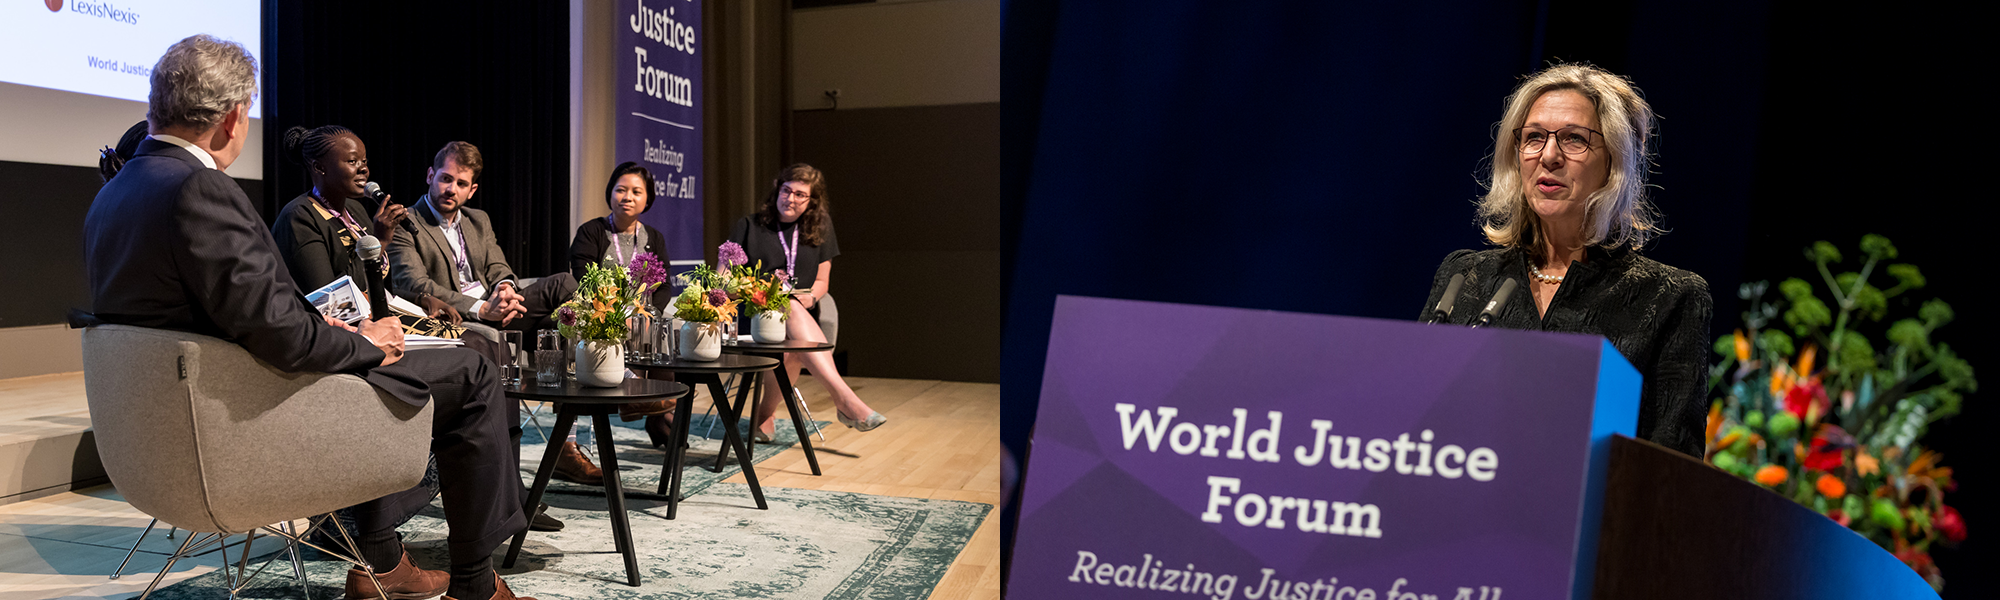 World Justice Forum VI | World Justice Project